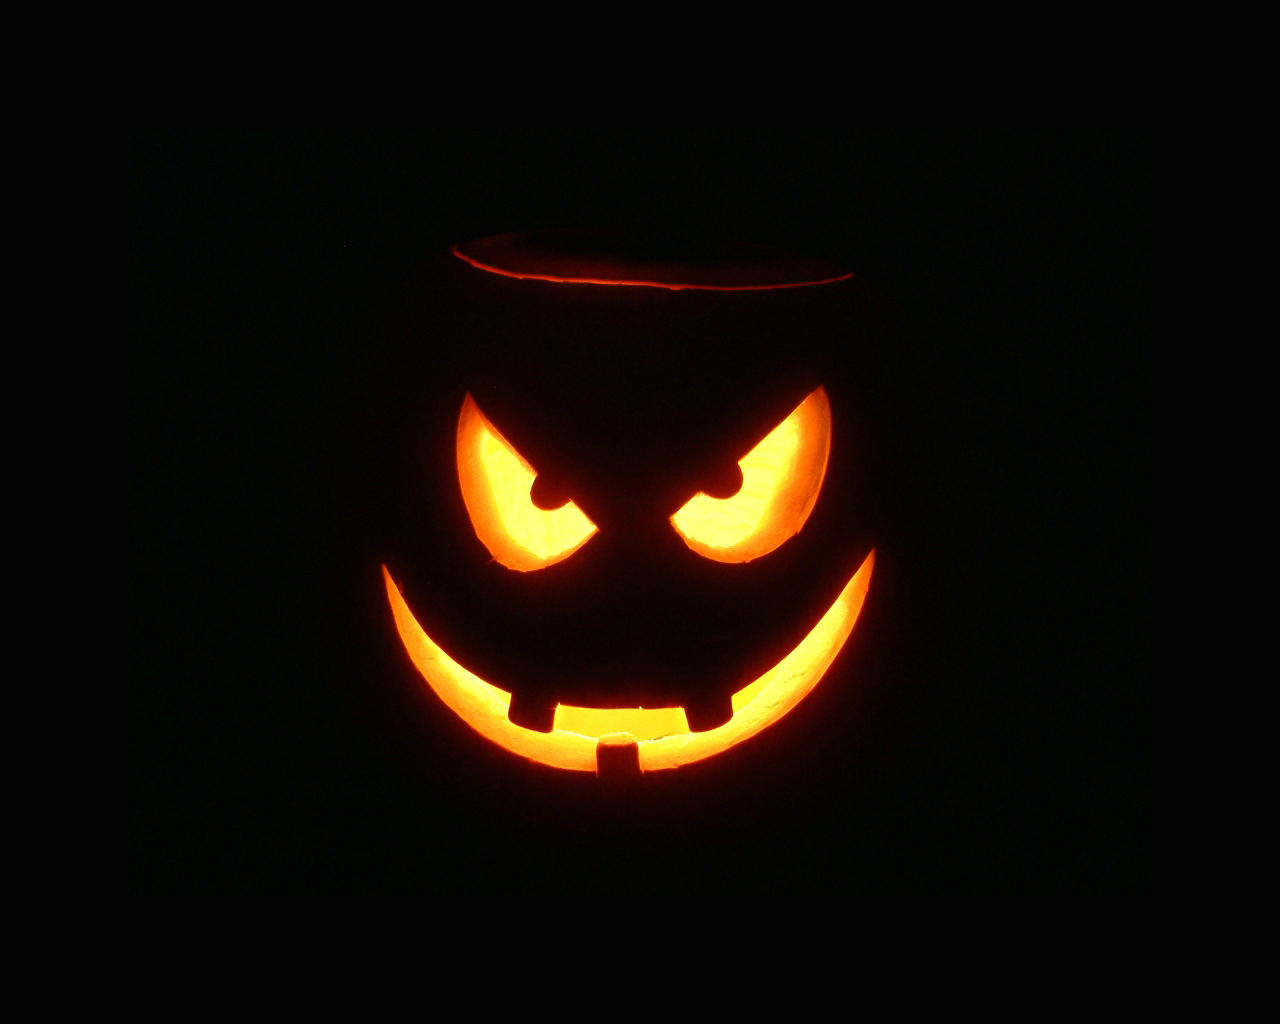 Scary Halloween Pumpkin Wallpaper